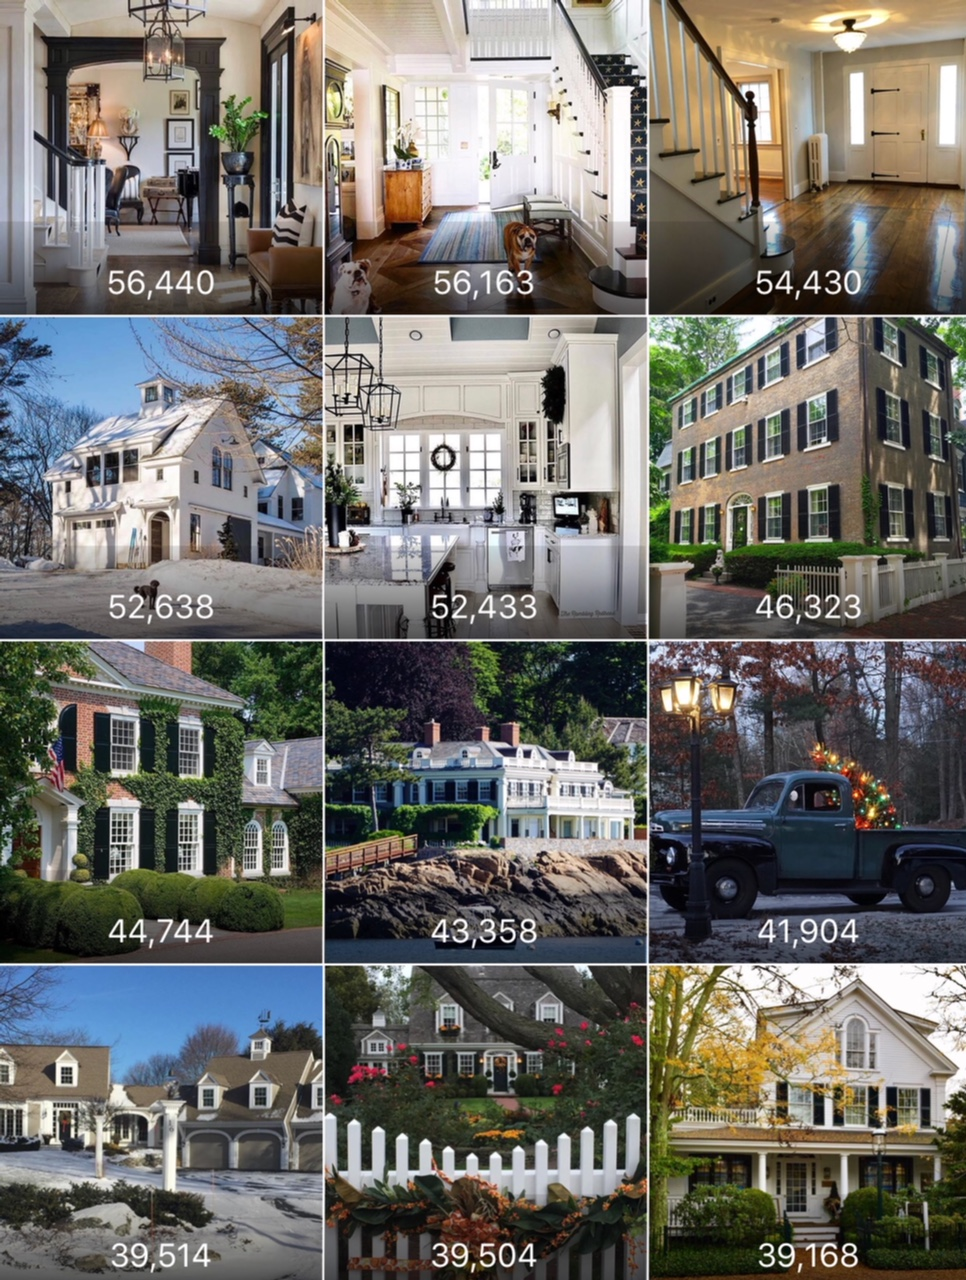 Your antique or luxury historic home could be listed here and/or on our social feeds! - Your listing information